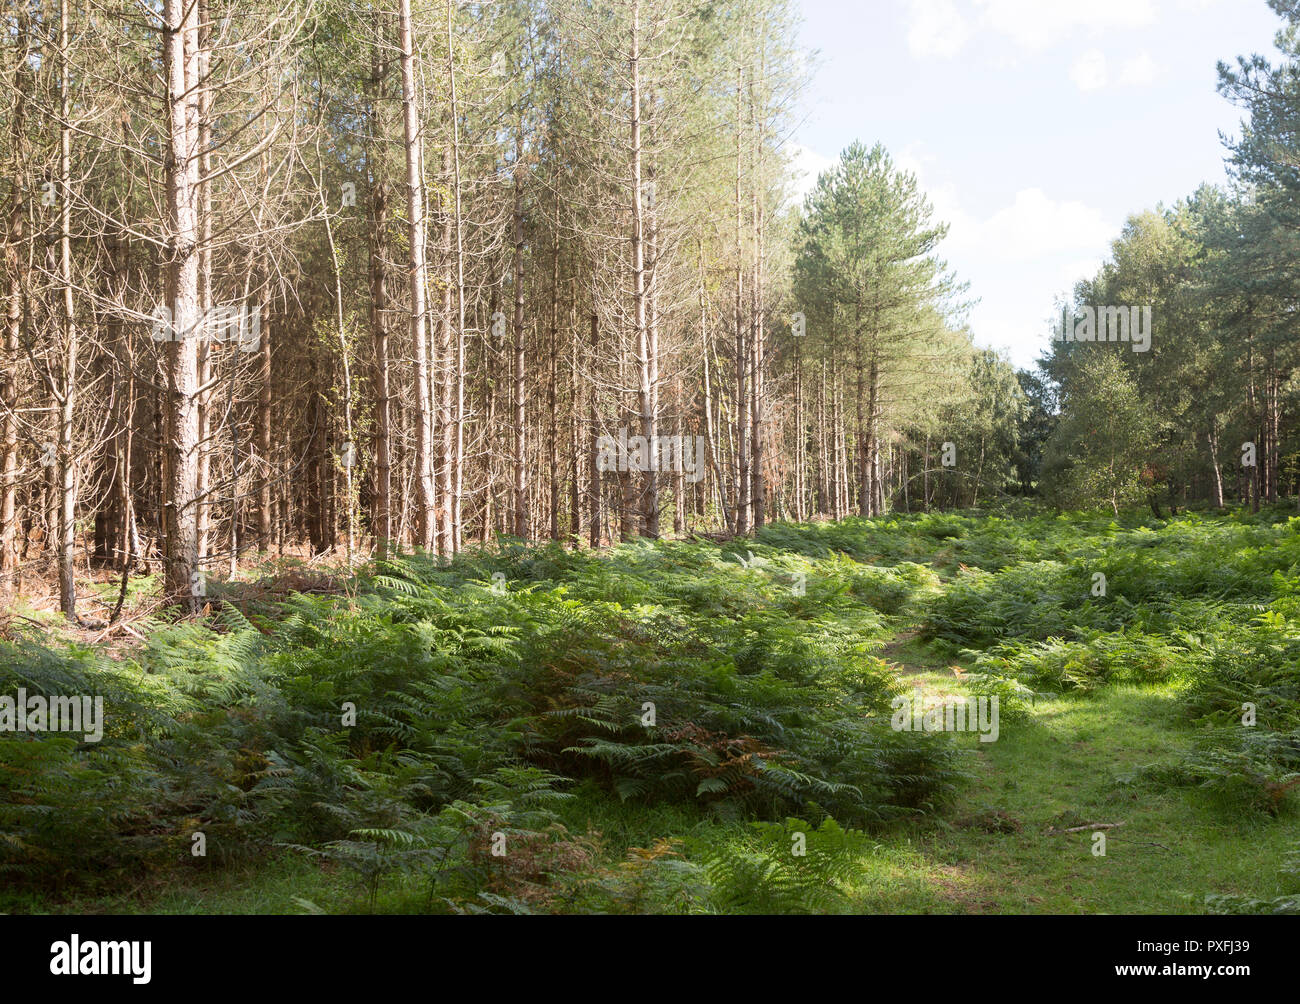 Coniferous pine trees in forestry plantation, Rendlesham Forest, Suffolk, England, UK - Stock Image